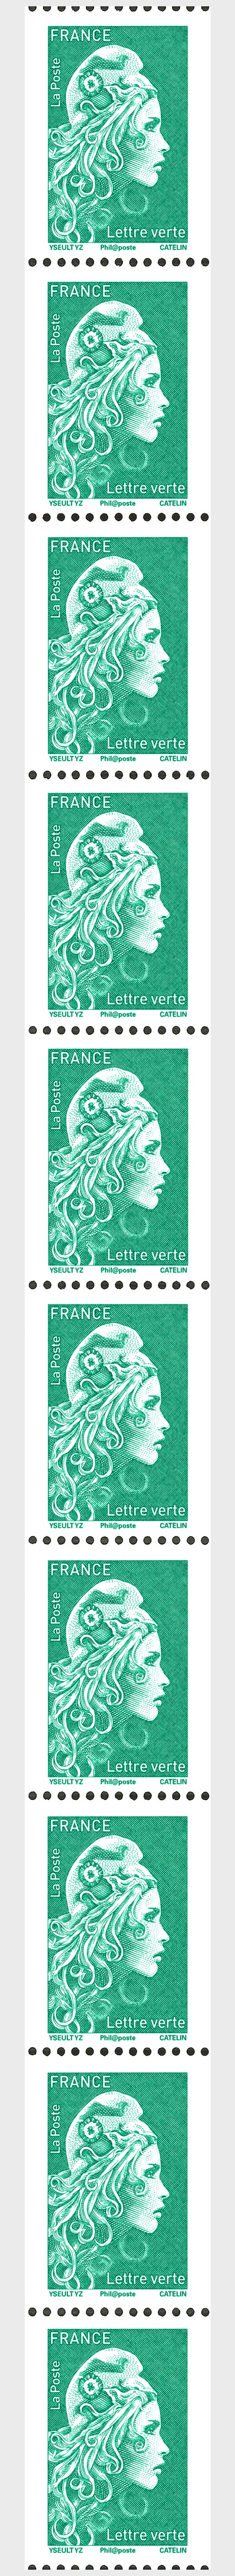 Marianne 2018 - Green Letter (Single Stamp) - Coil Stamps